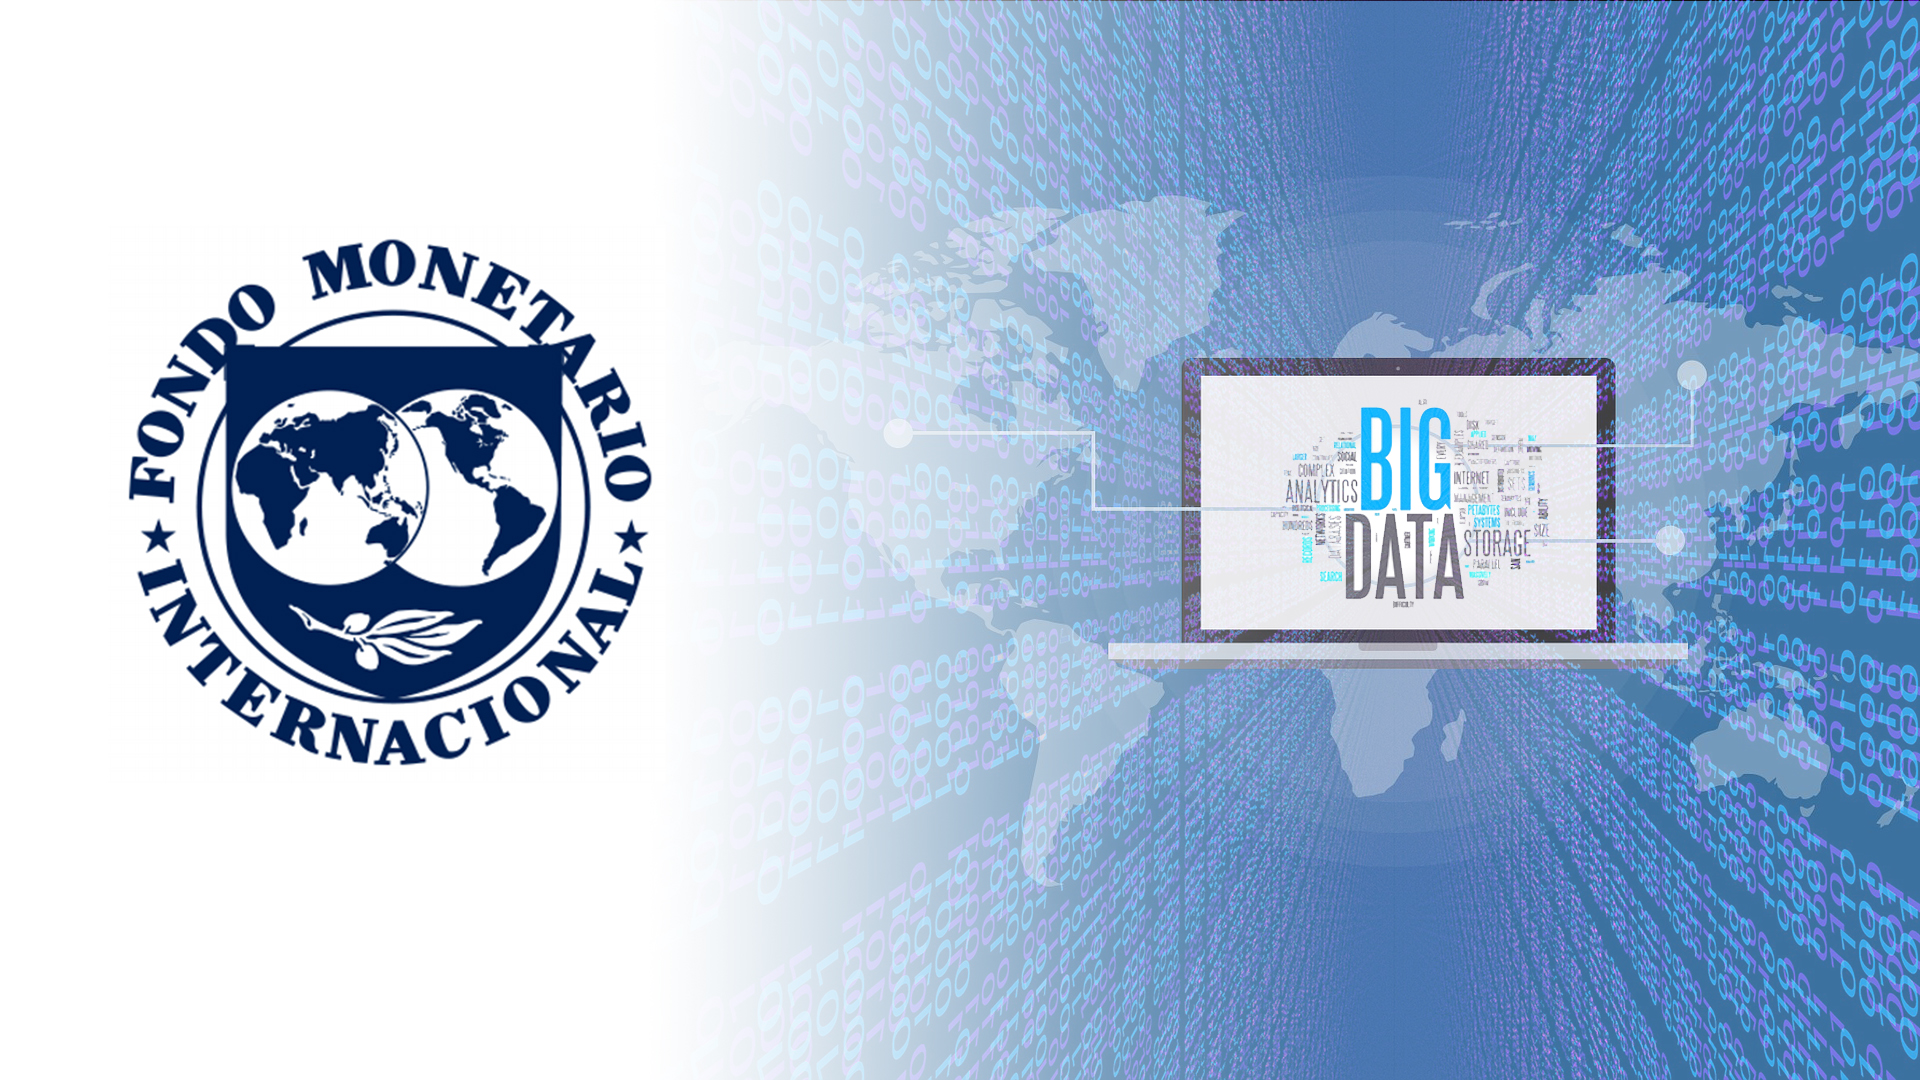 Big Data y Data Science: equidad y bienestar social